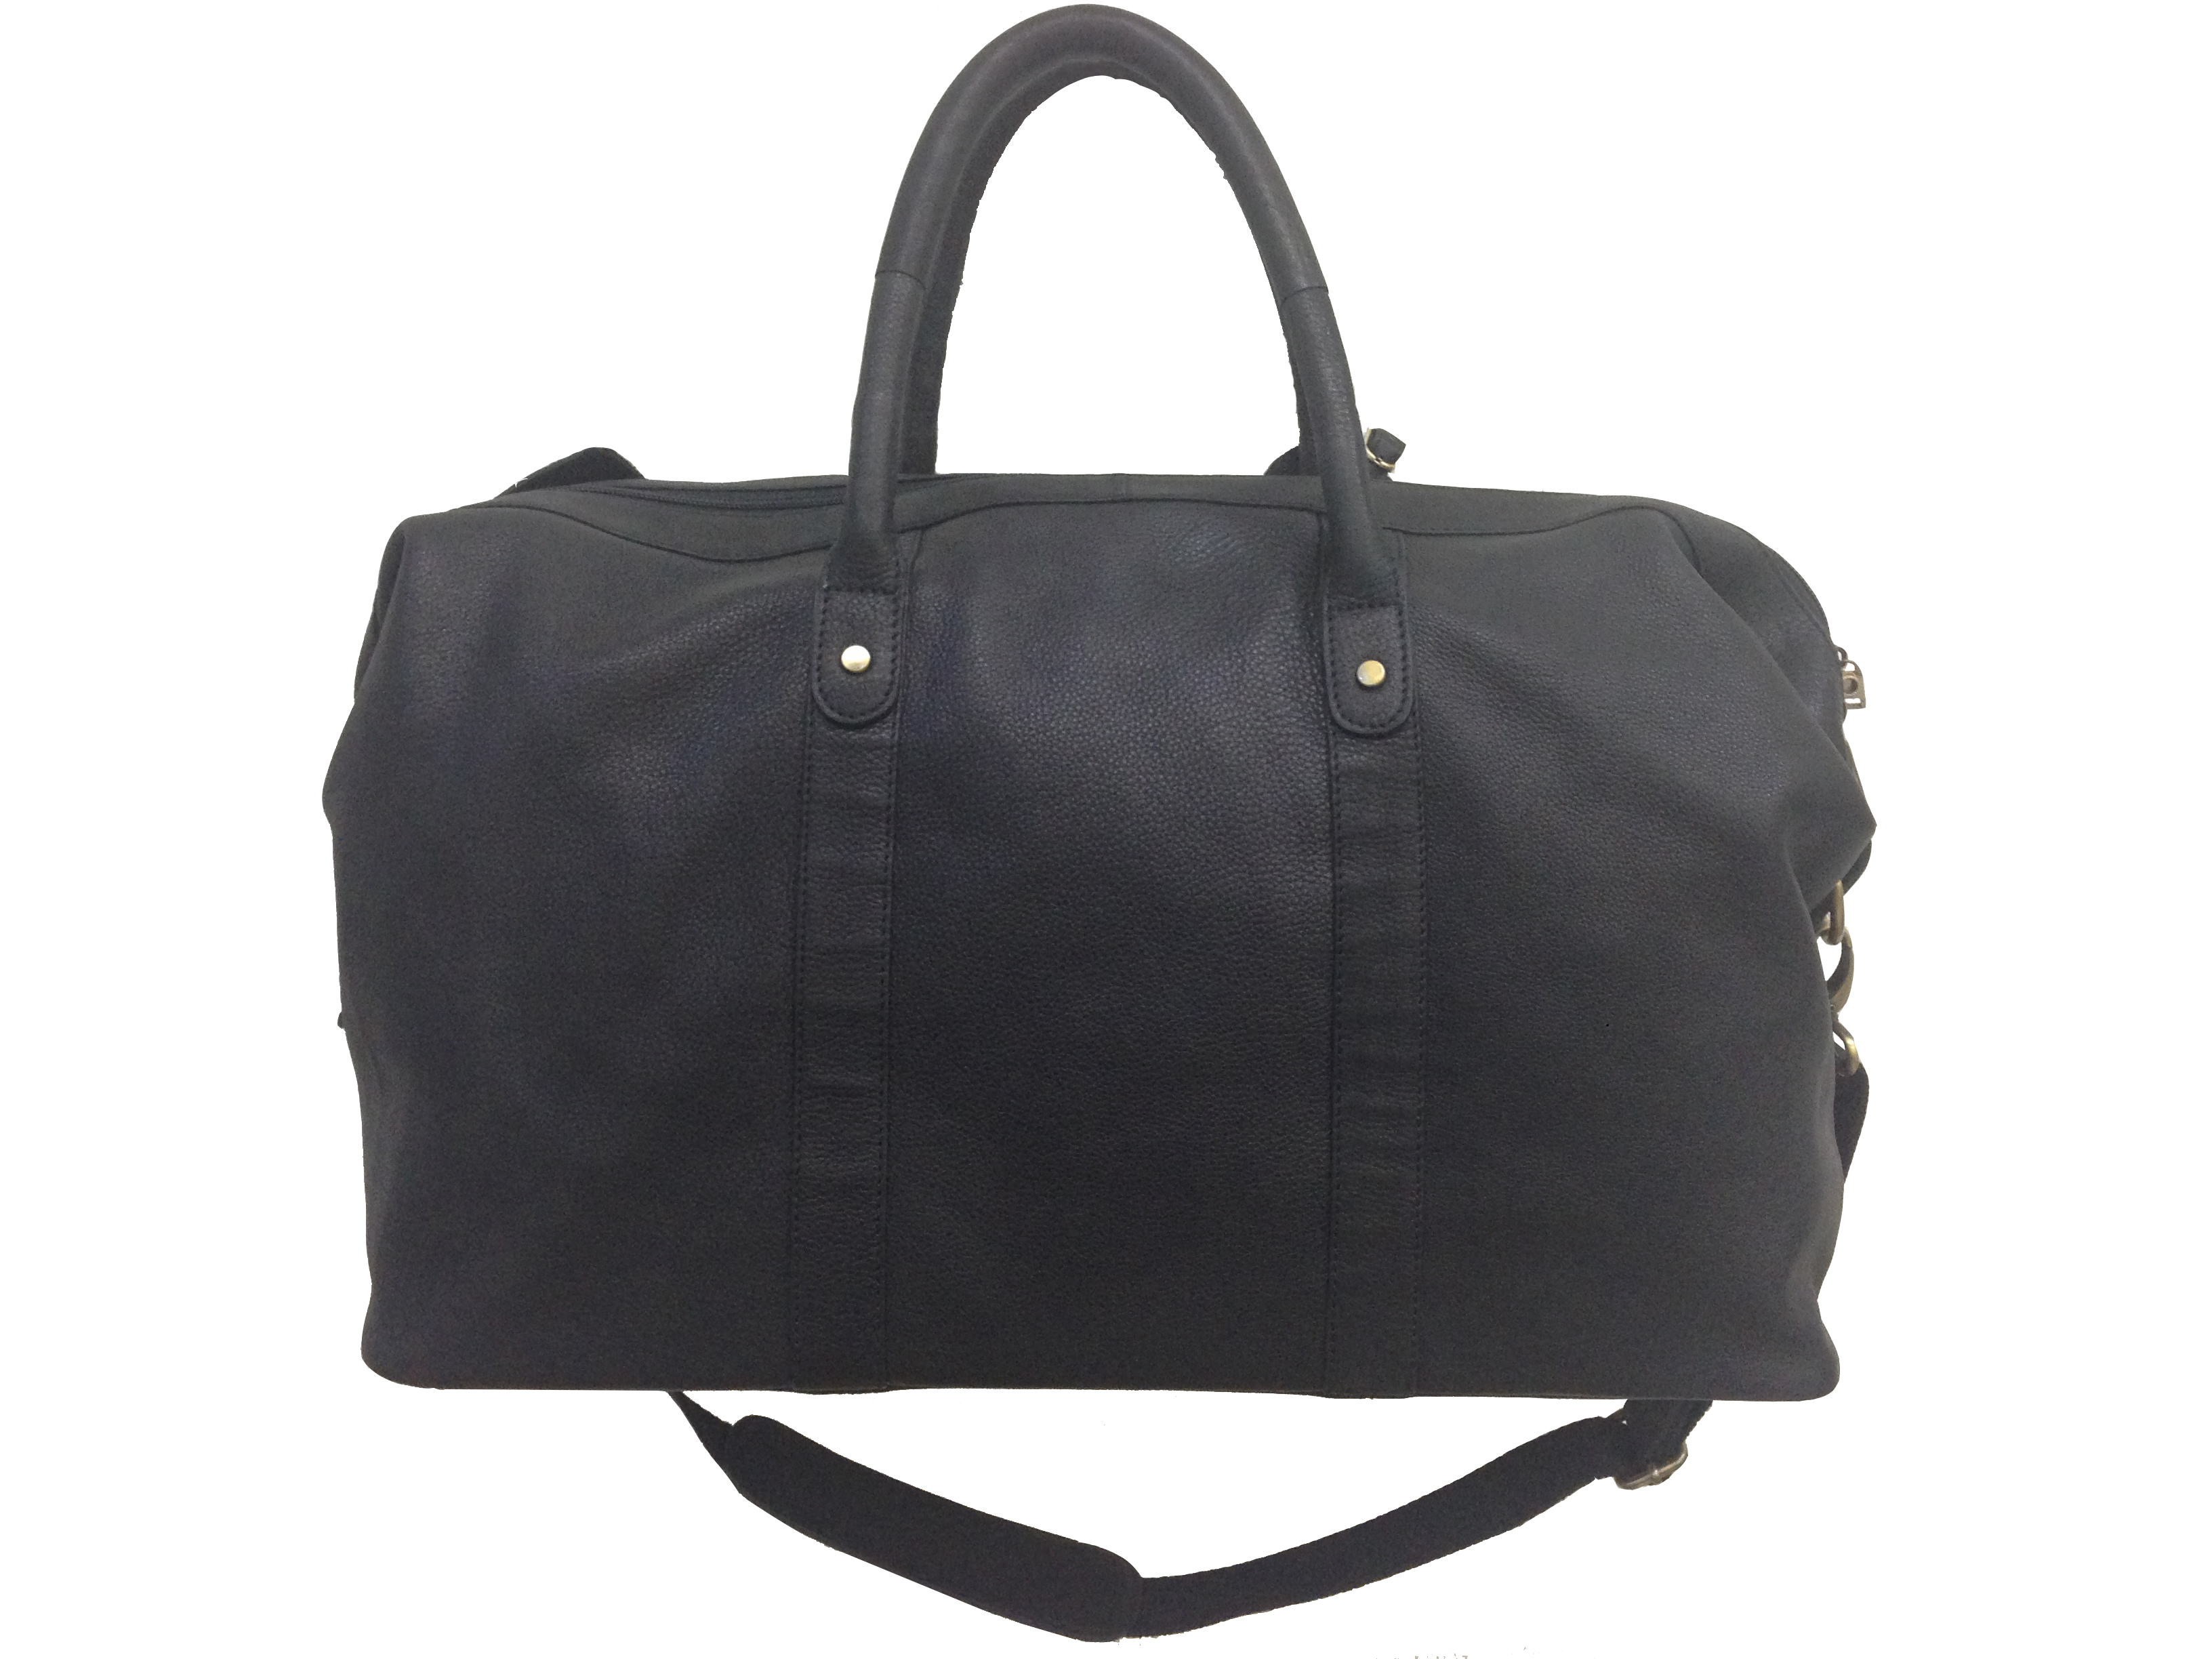 Leather handbags manufacturers in india (Kolkata)